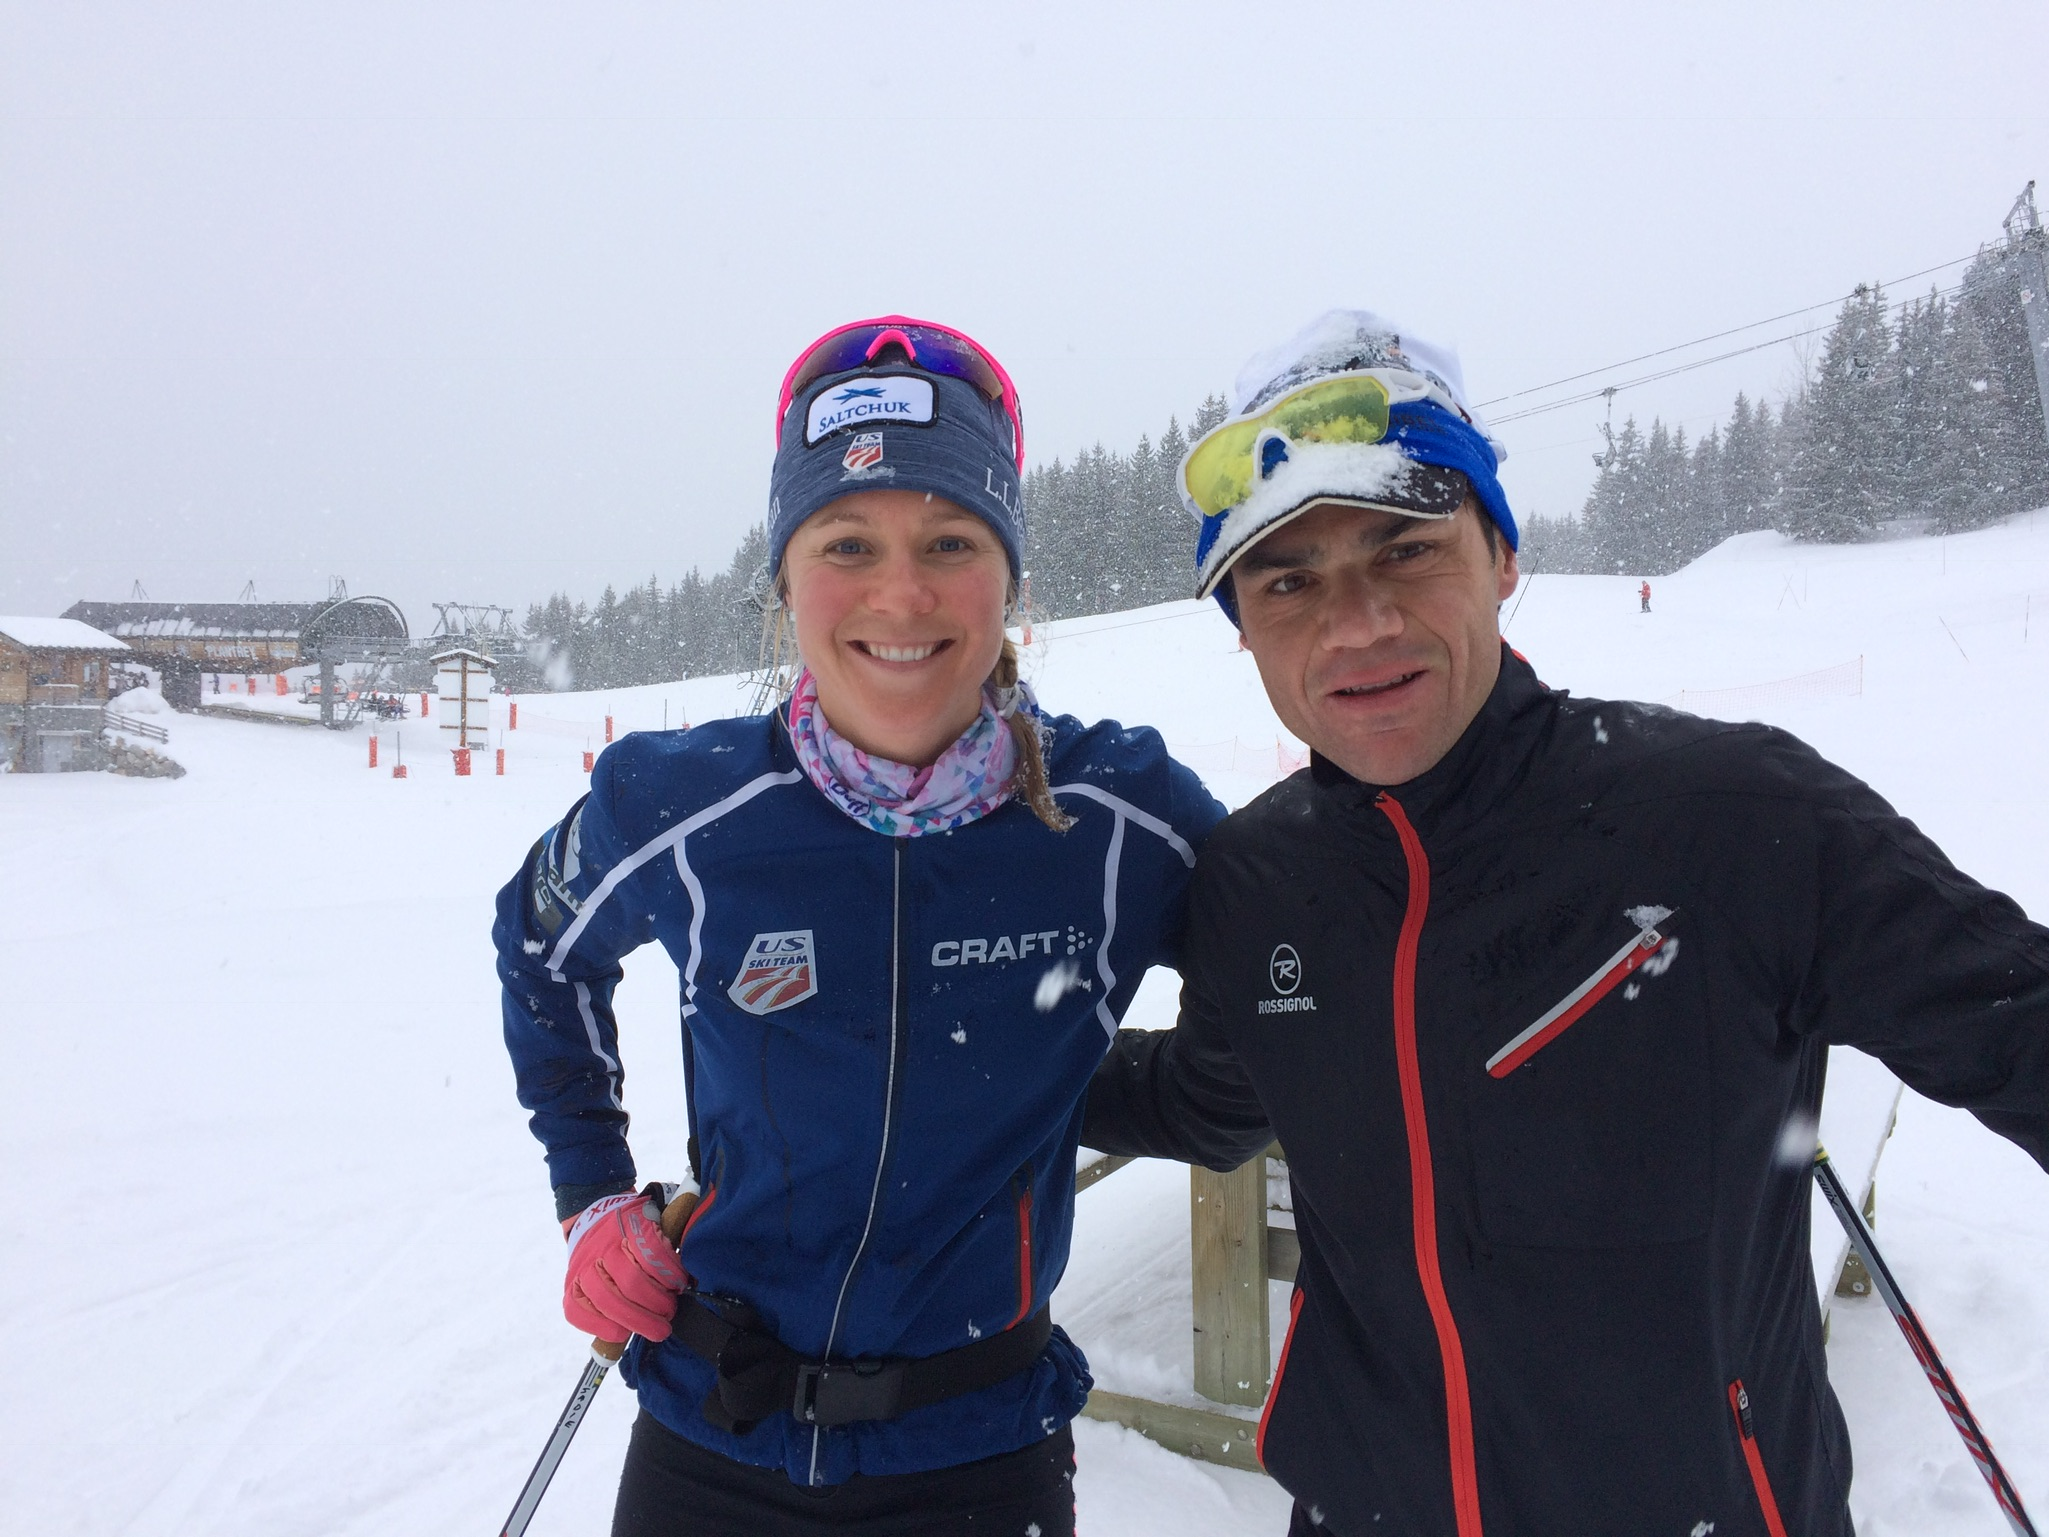 I made a new friend on the trails, who happened to manage the Olympic Parc in town. Huge thanks to Yann Pesando for giving me access to the gym and spa in Meribel, making my camp even better!